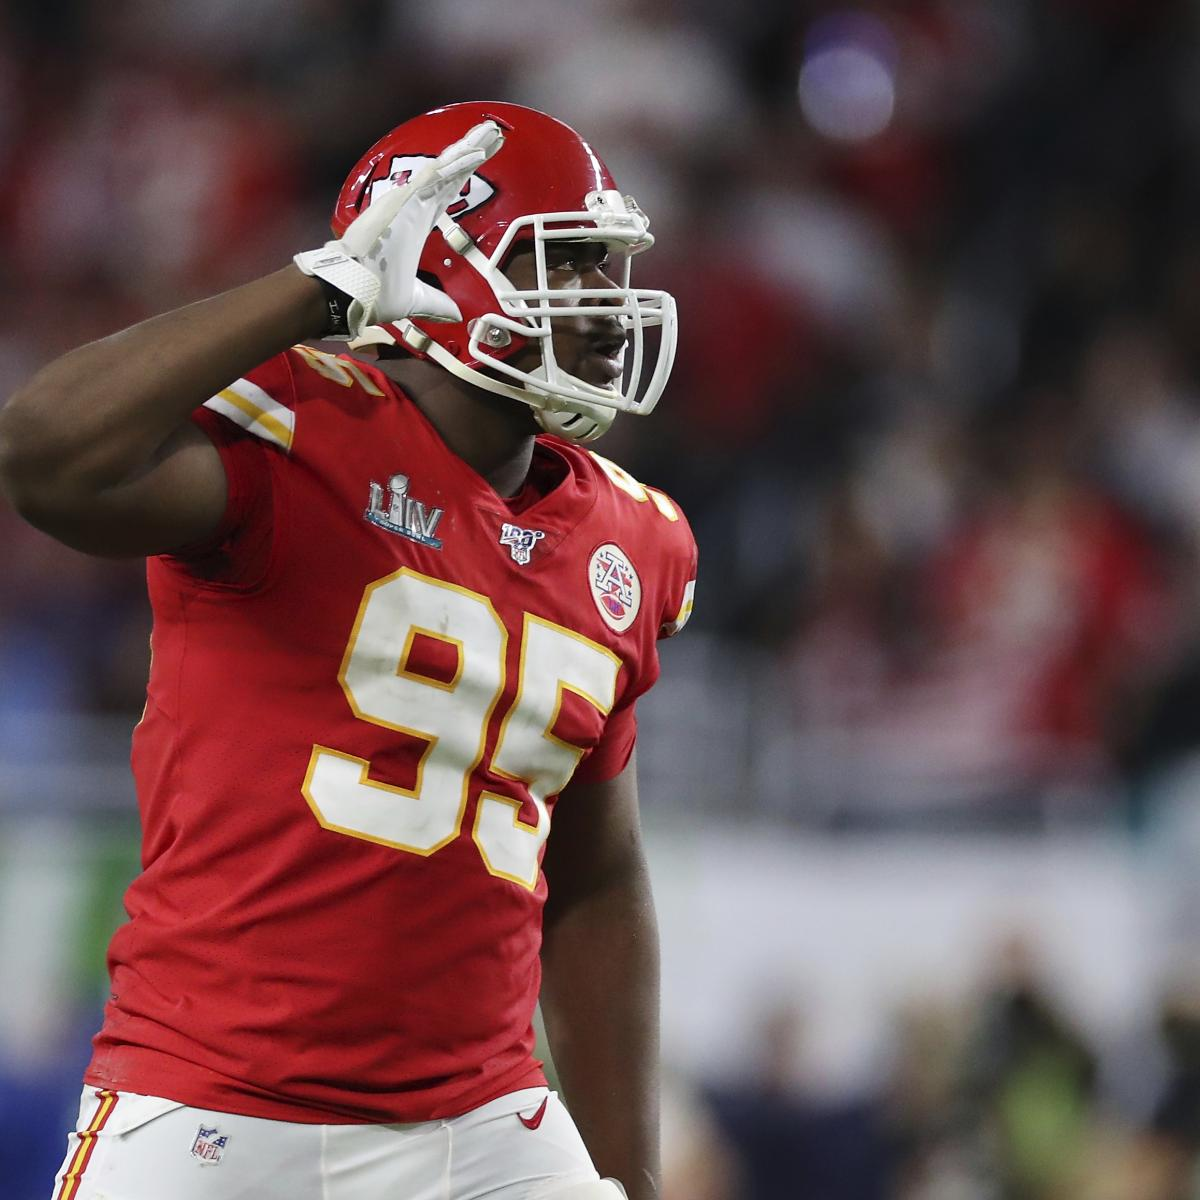 NFL Free Agency 2020: Rumors and Predicted Landing Spots for Top Targets